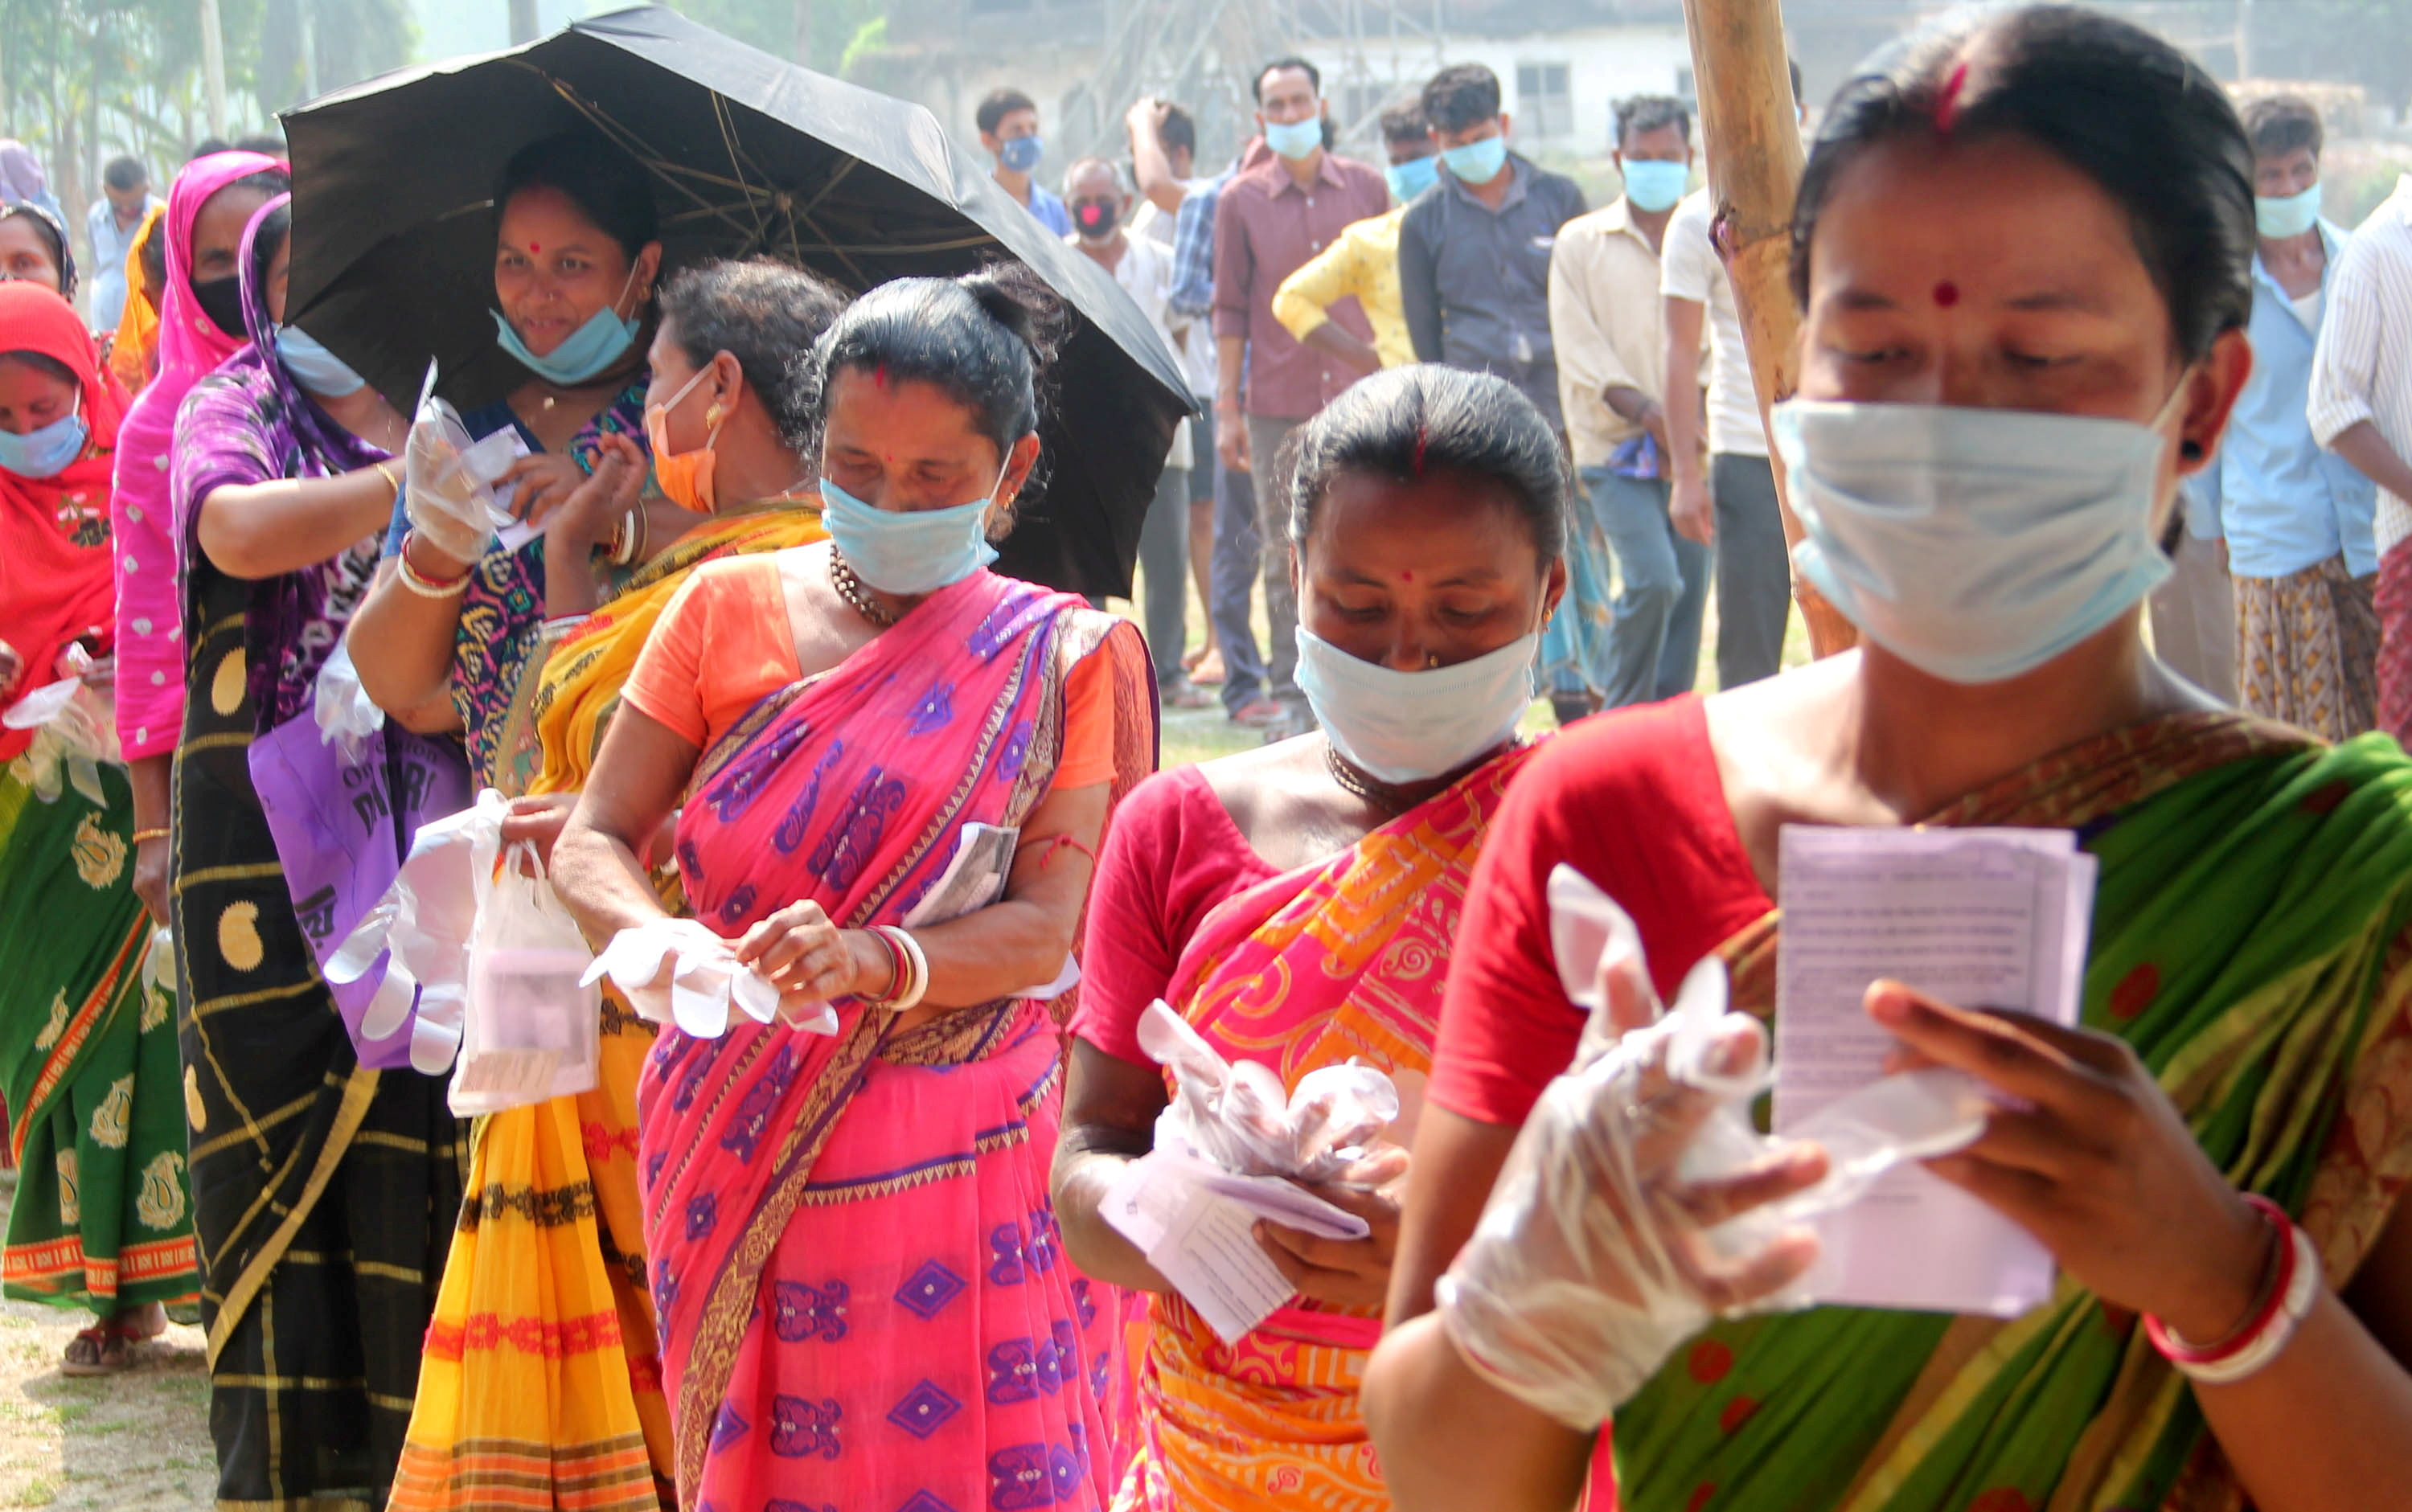 South Dinajpur: Voters wait in queues to cast votes at a polling station during the 7th phase of West Bengal Assembly elections at a village near Balurghat in South Dinajpur district on Monday, April 26, 2021.  (PTI Photo) (PTI04_26_2021_000067B)